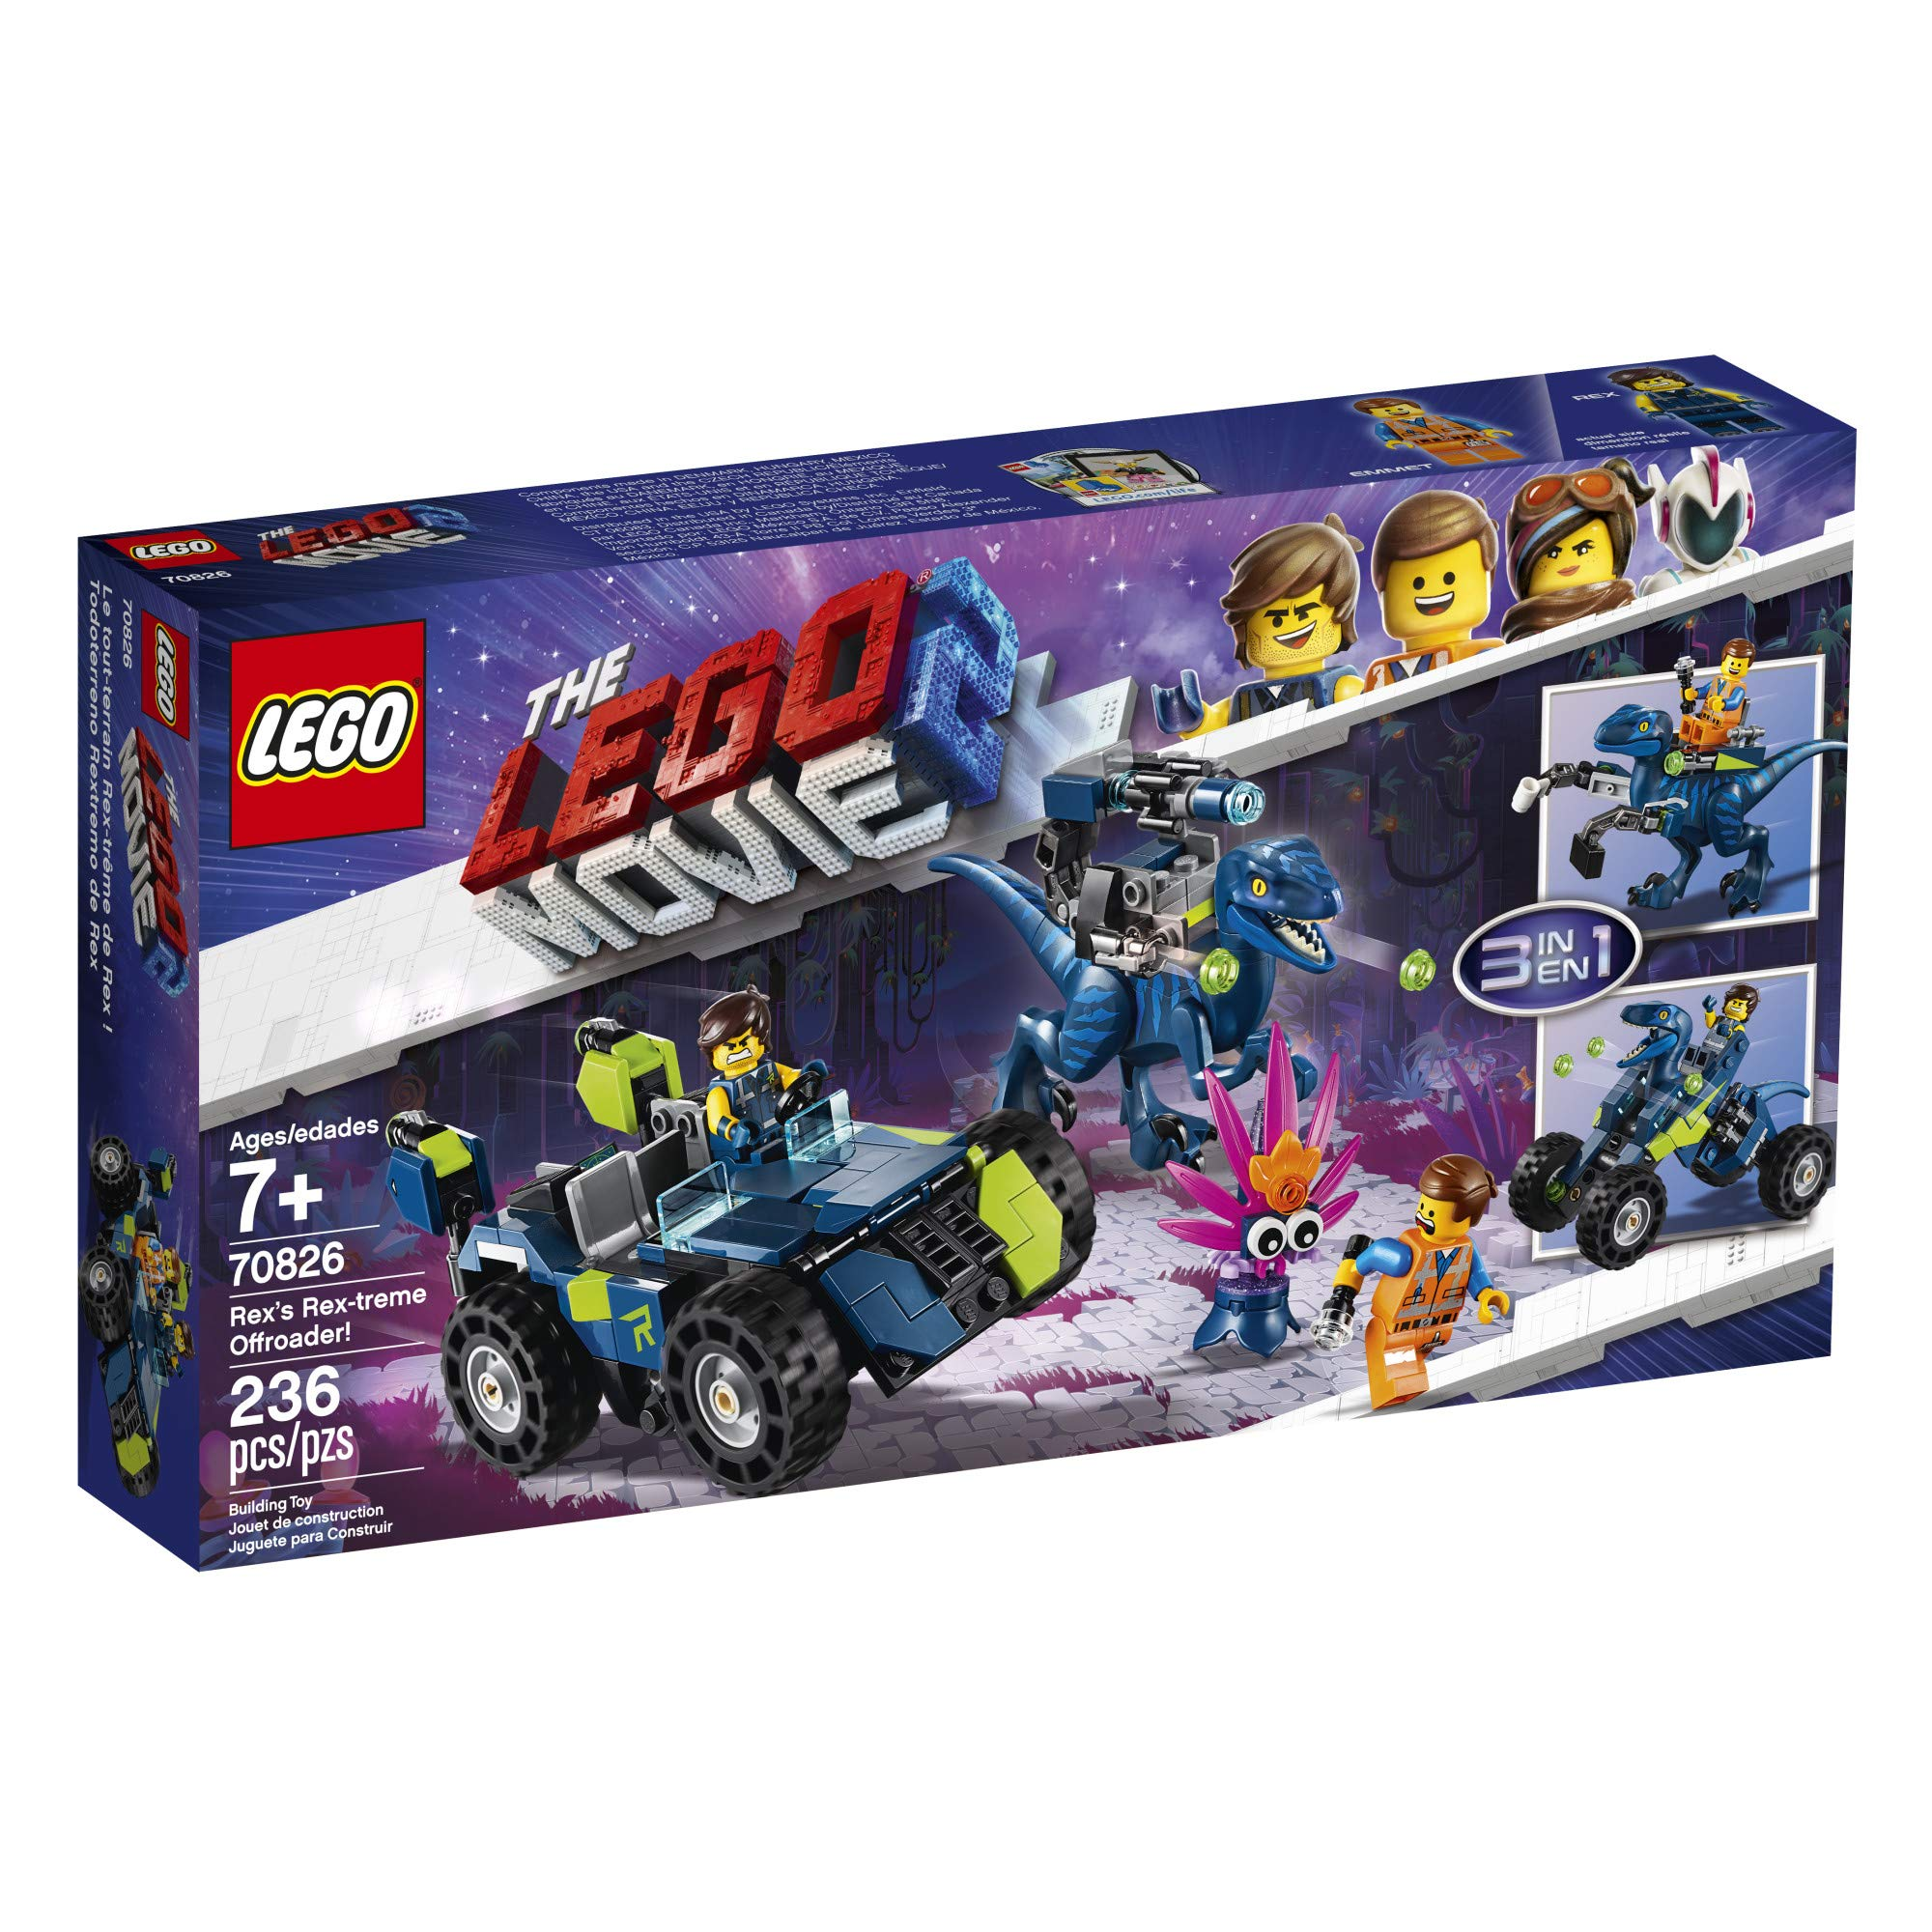 Check Out Lego Movie Dinosaur CarProducts On Amazon!